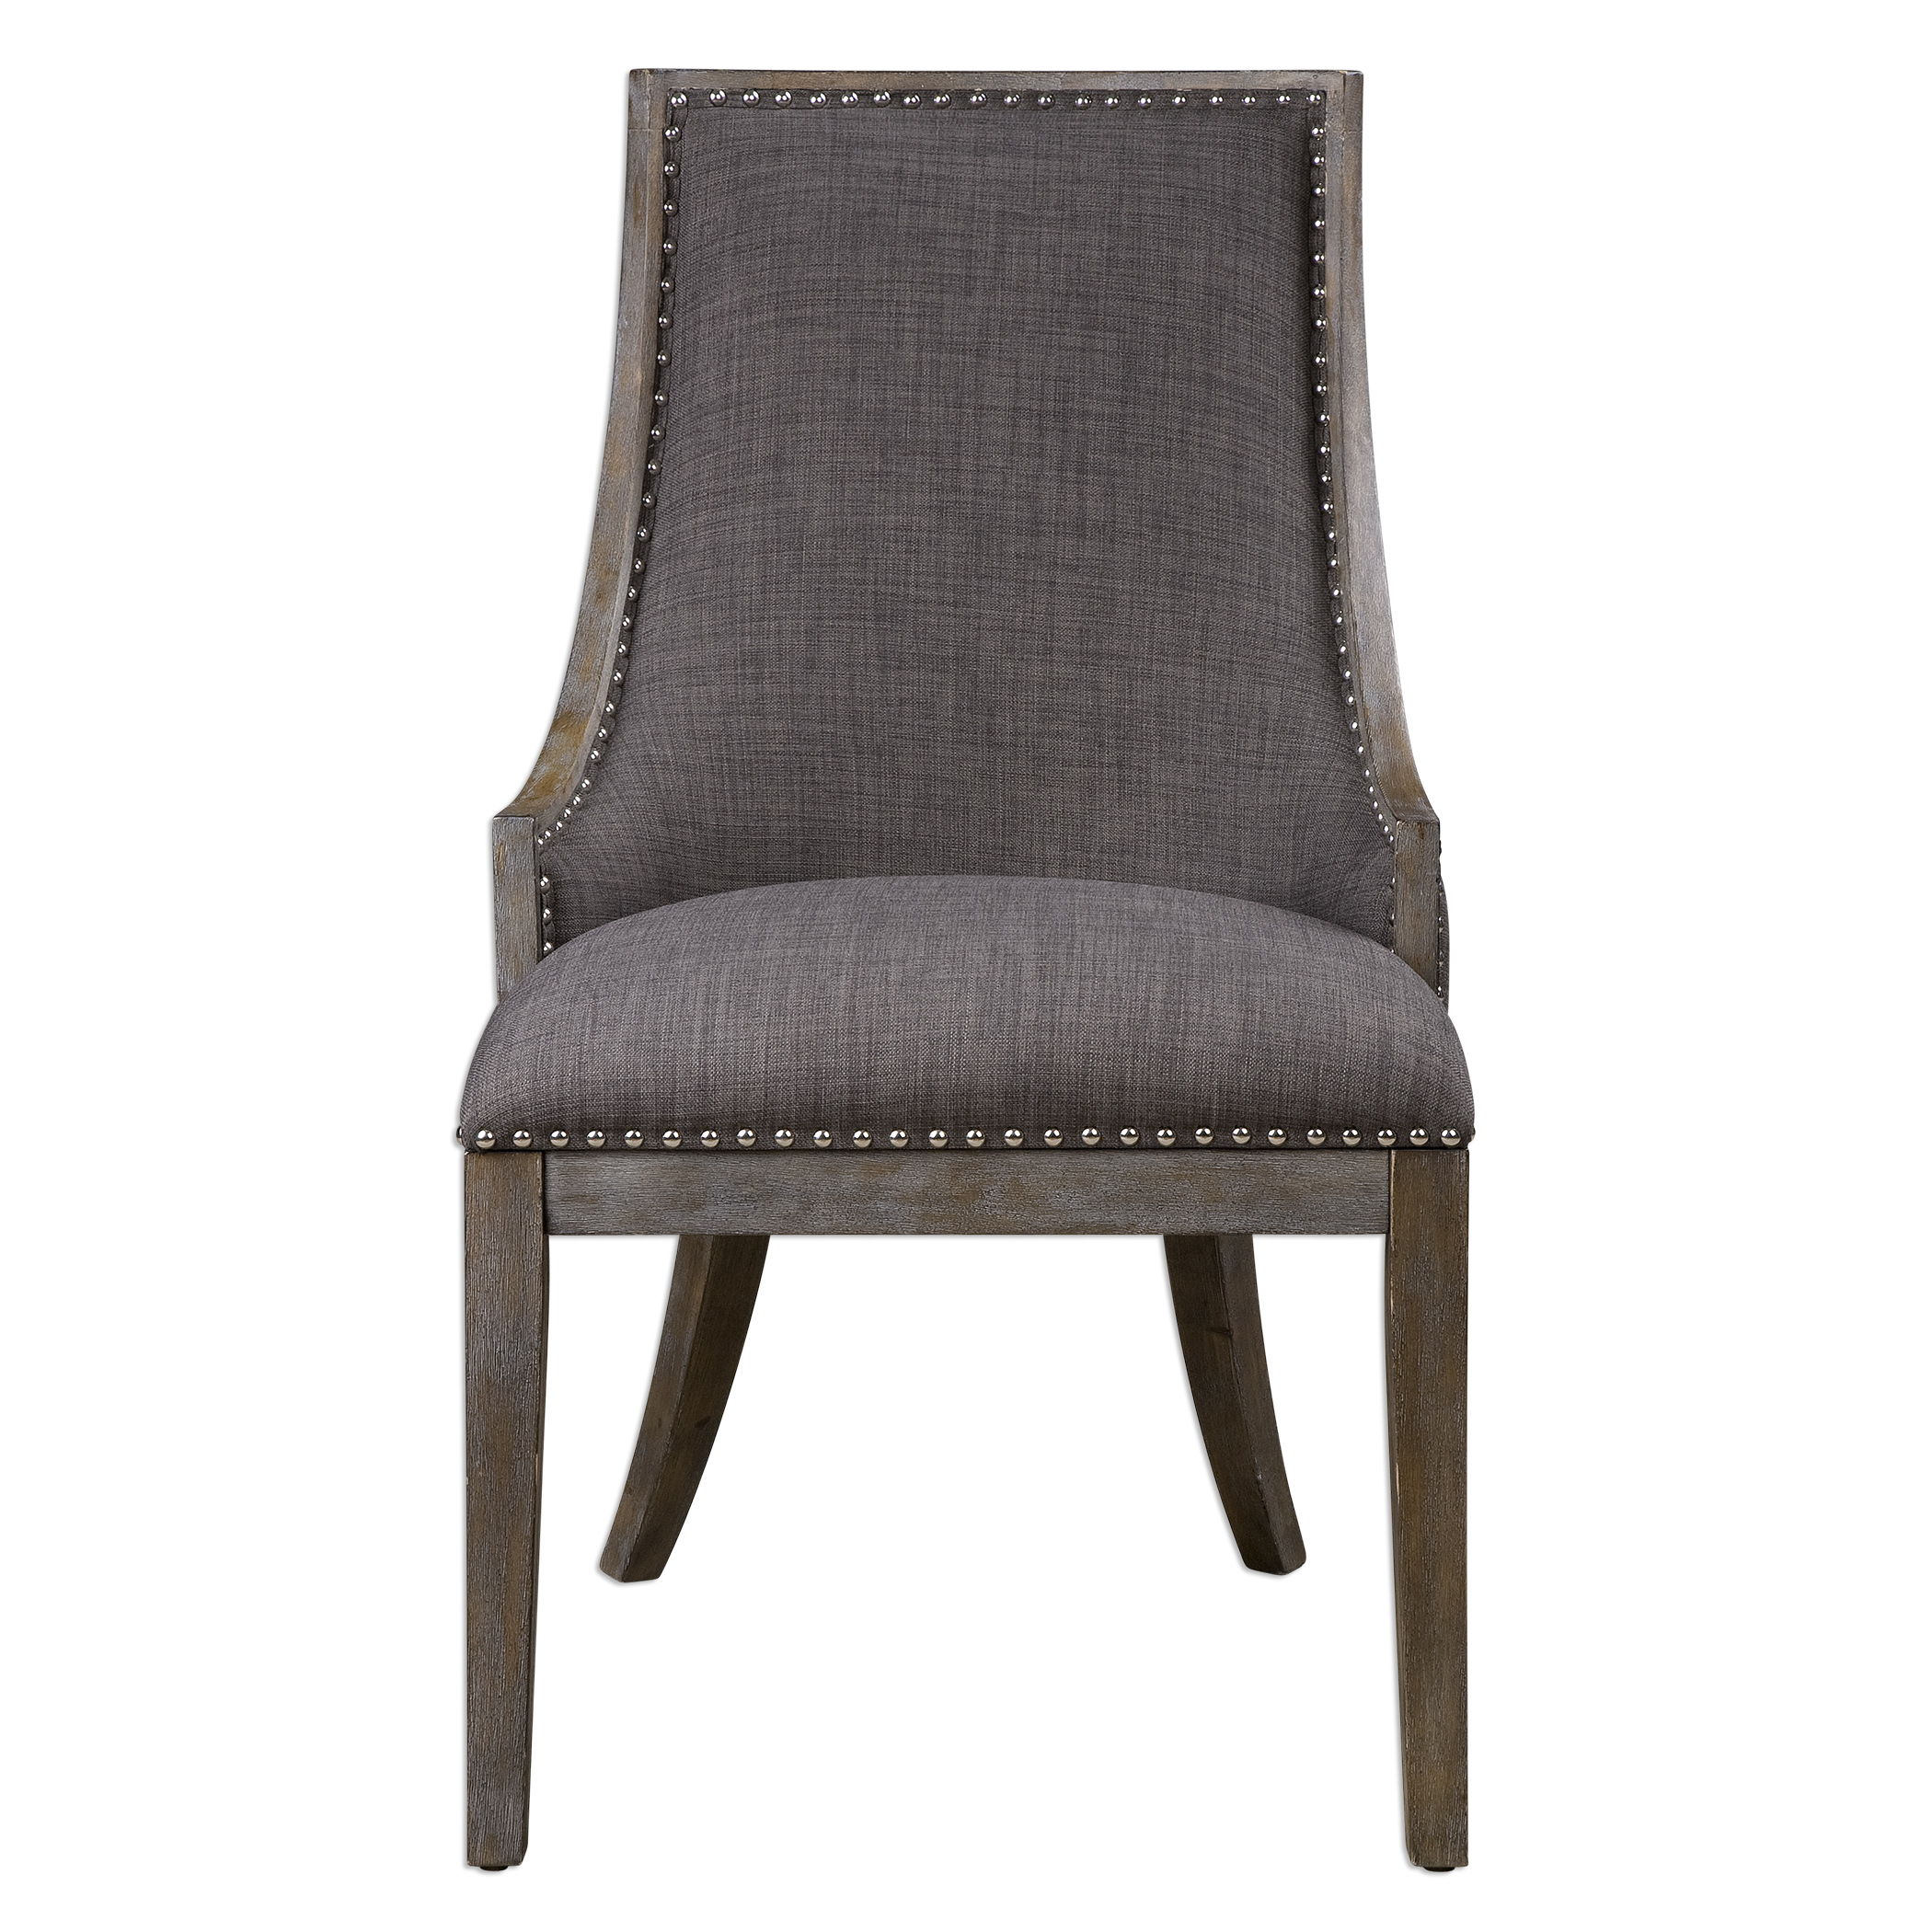 Accent Furniture - Accent Chairs Aidrian Charcoal Gray Accent Chair by Uttermost at Pedigo Furniture